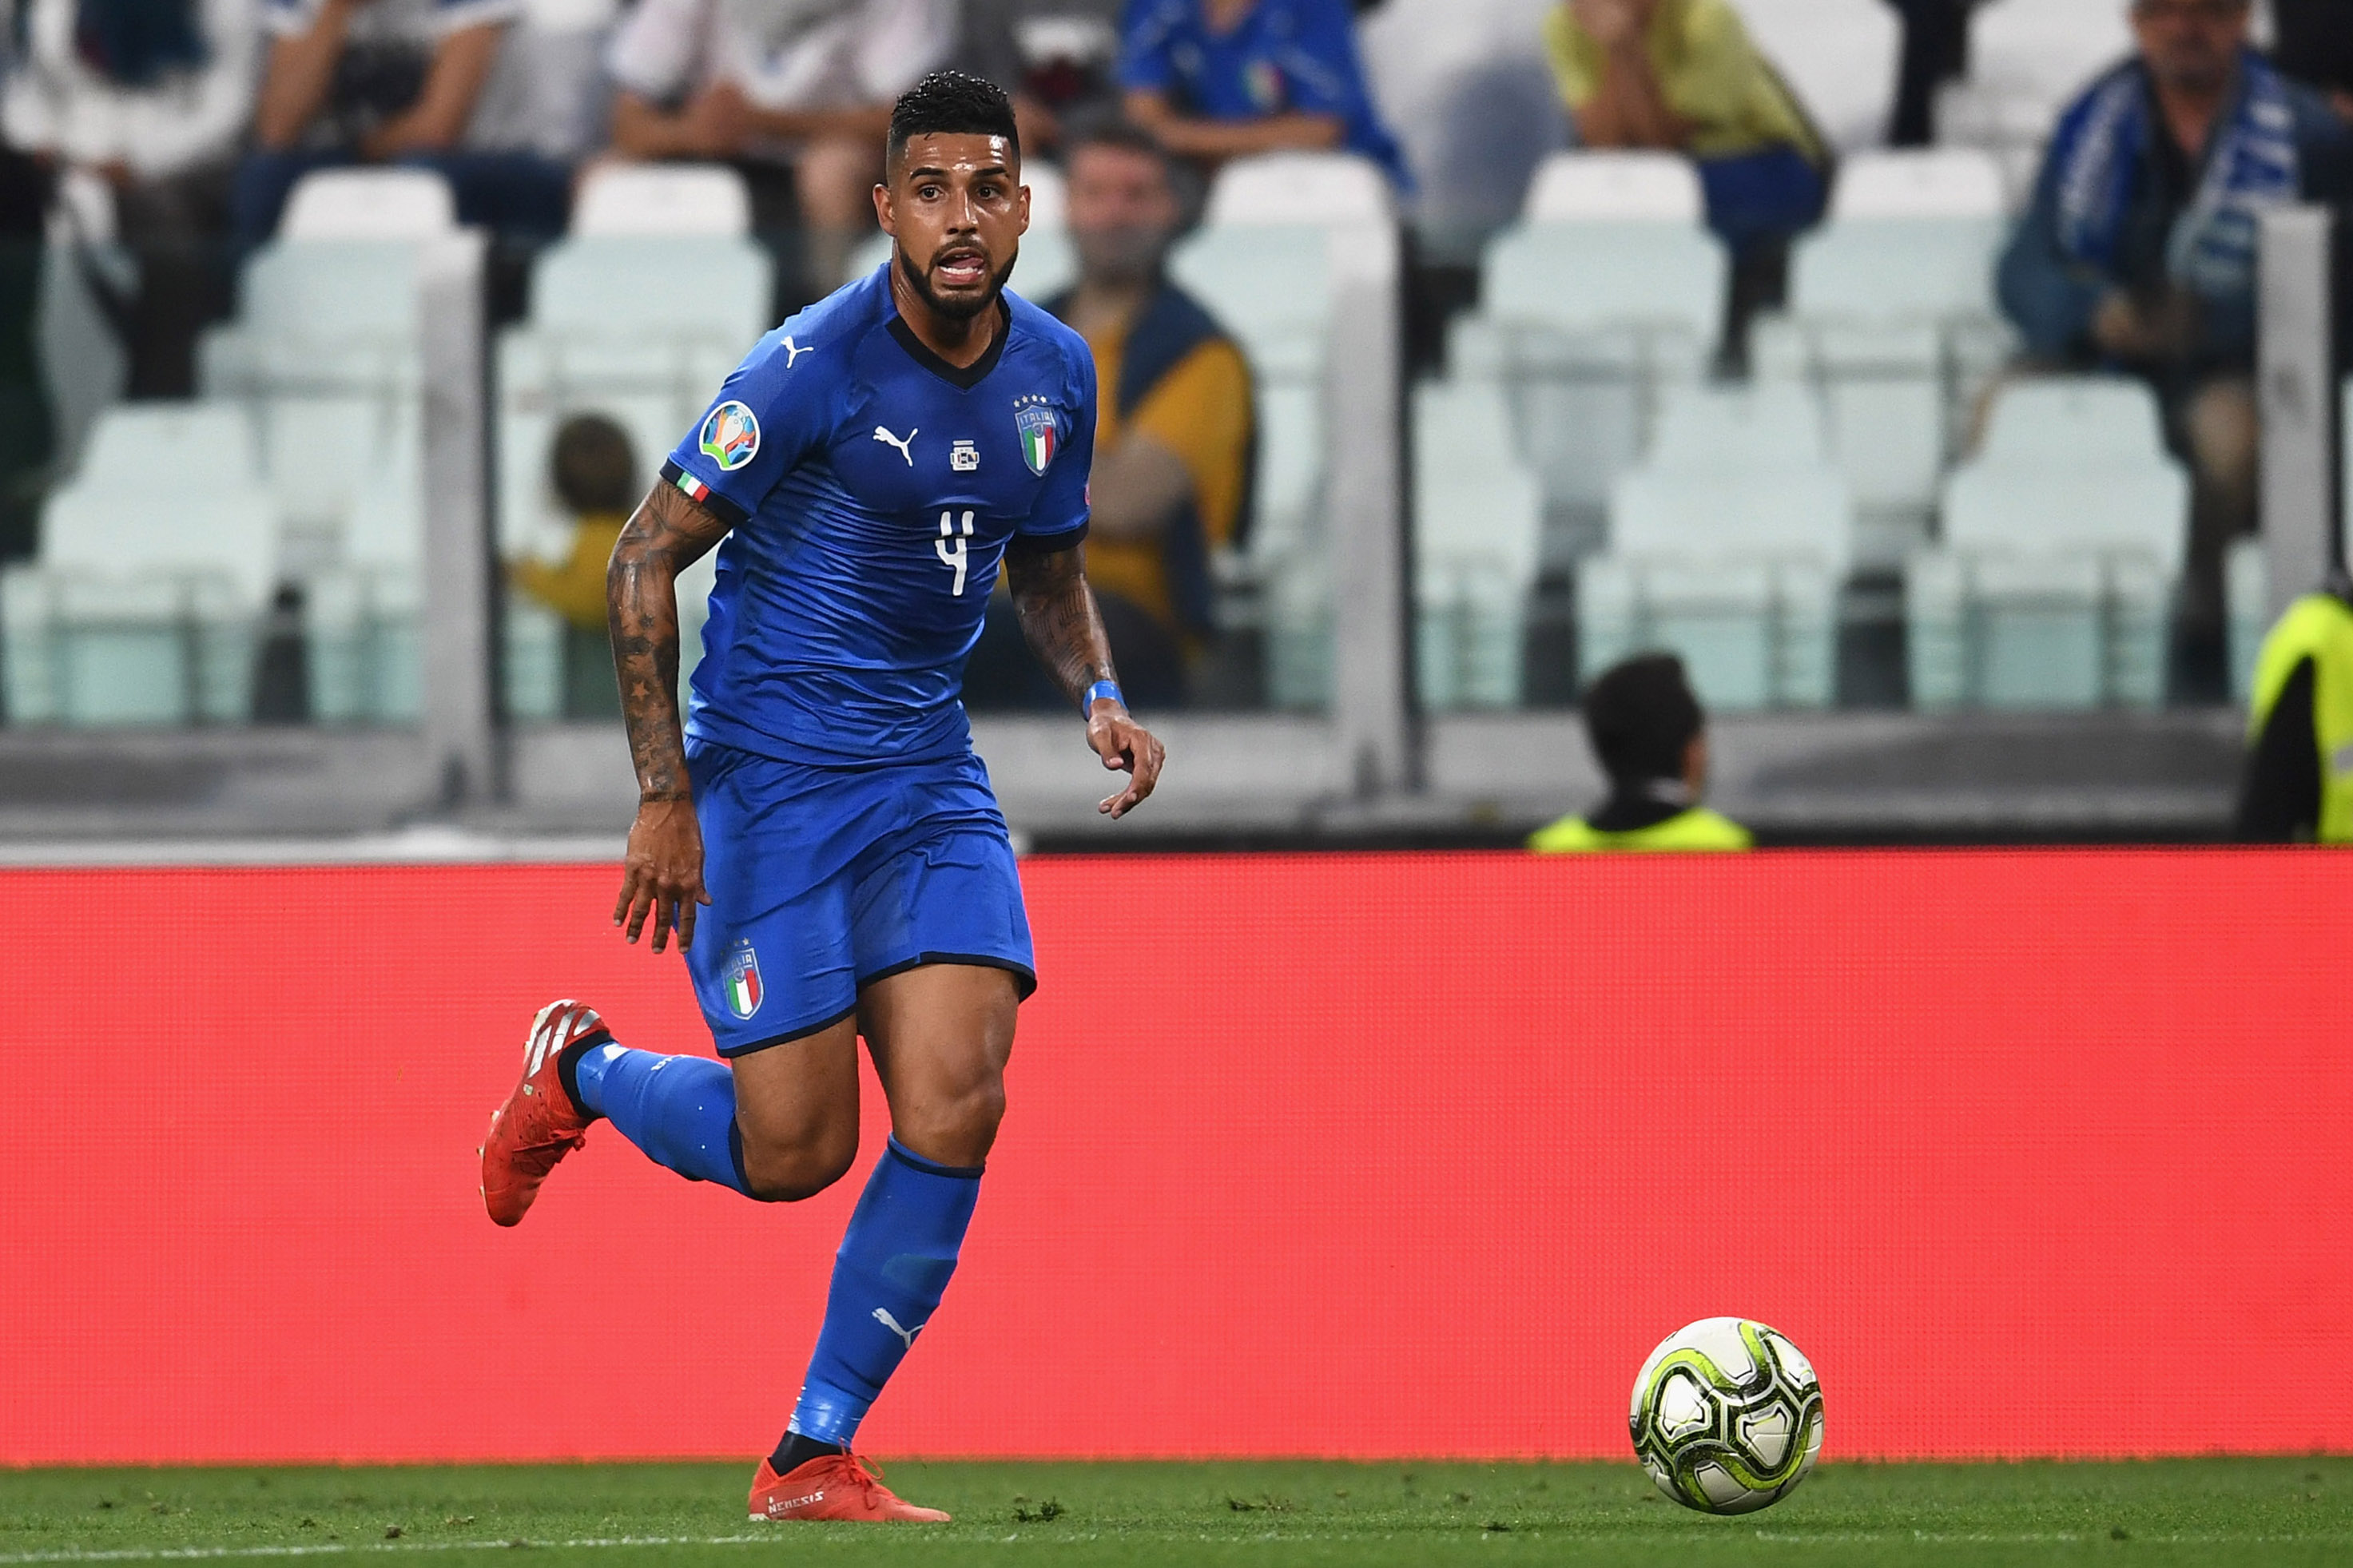 Emerson has no knowledge of any Juventus bid, still happy at Chelsea just like last week